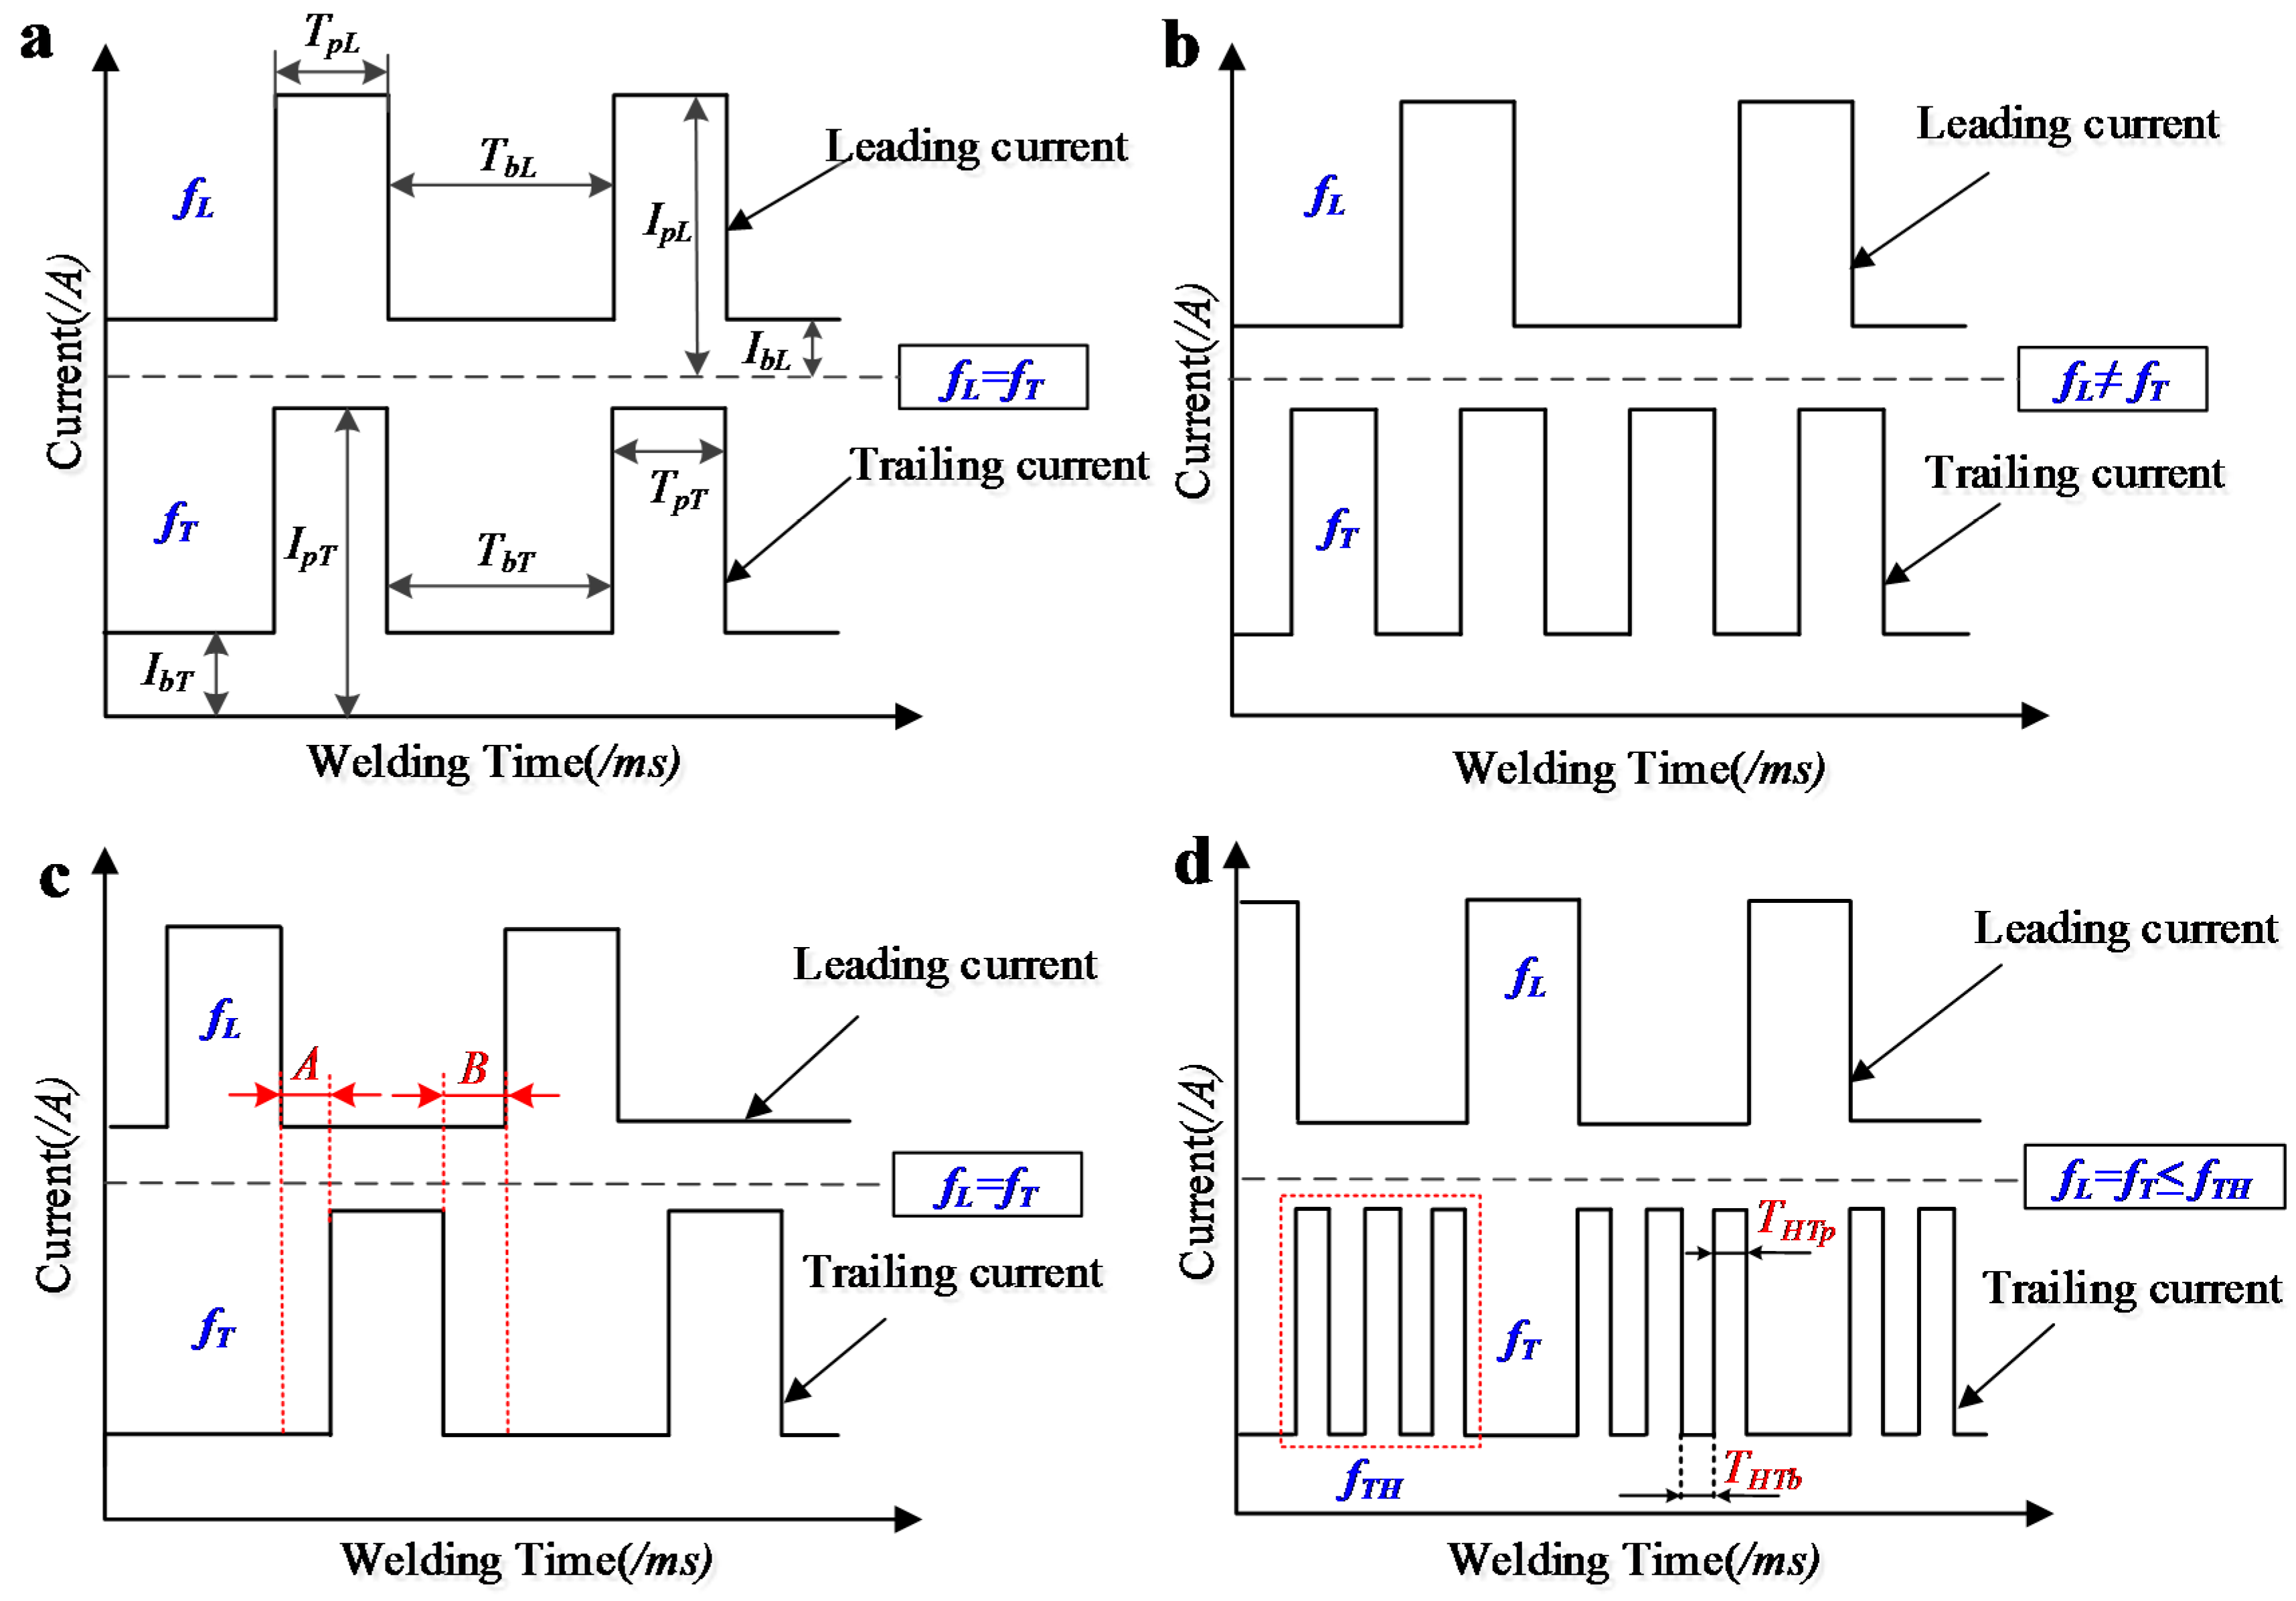 Multi Mig Welder Wiring Diagram Web About Power Inverter Circuit Moreover Tig Applied Sciences Free Full Text Research Of A Frequency Rh Mdpi Com Arc Miller